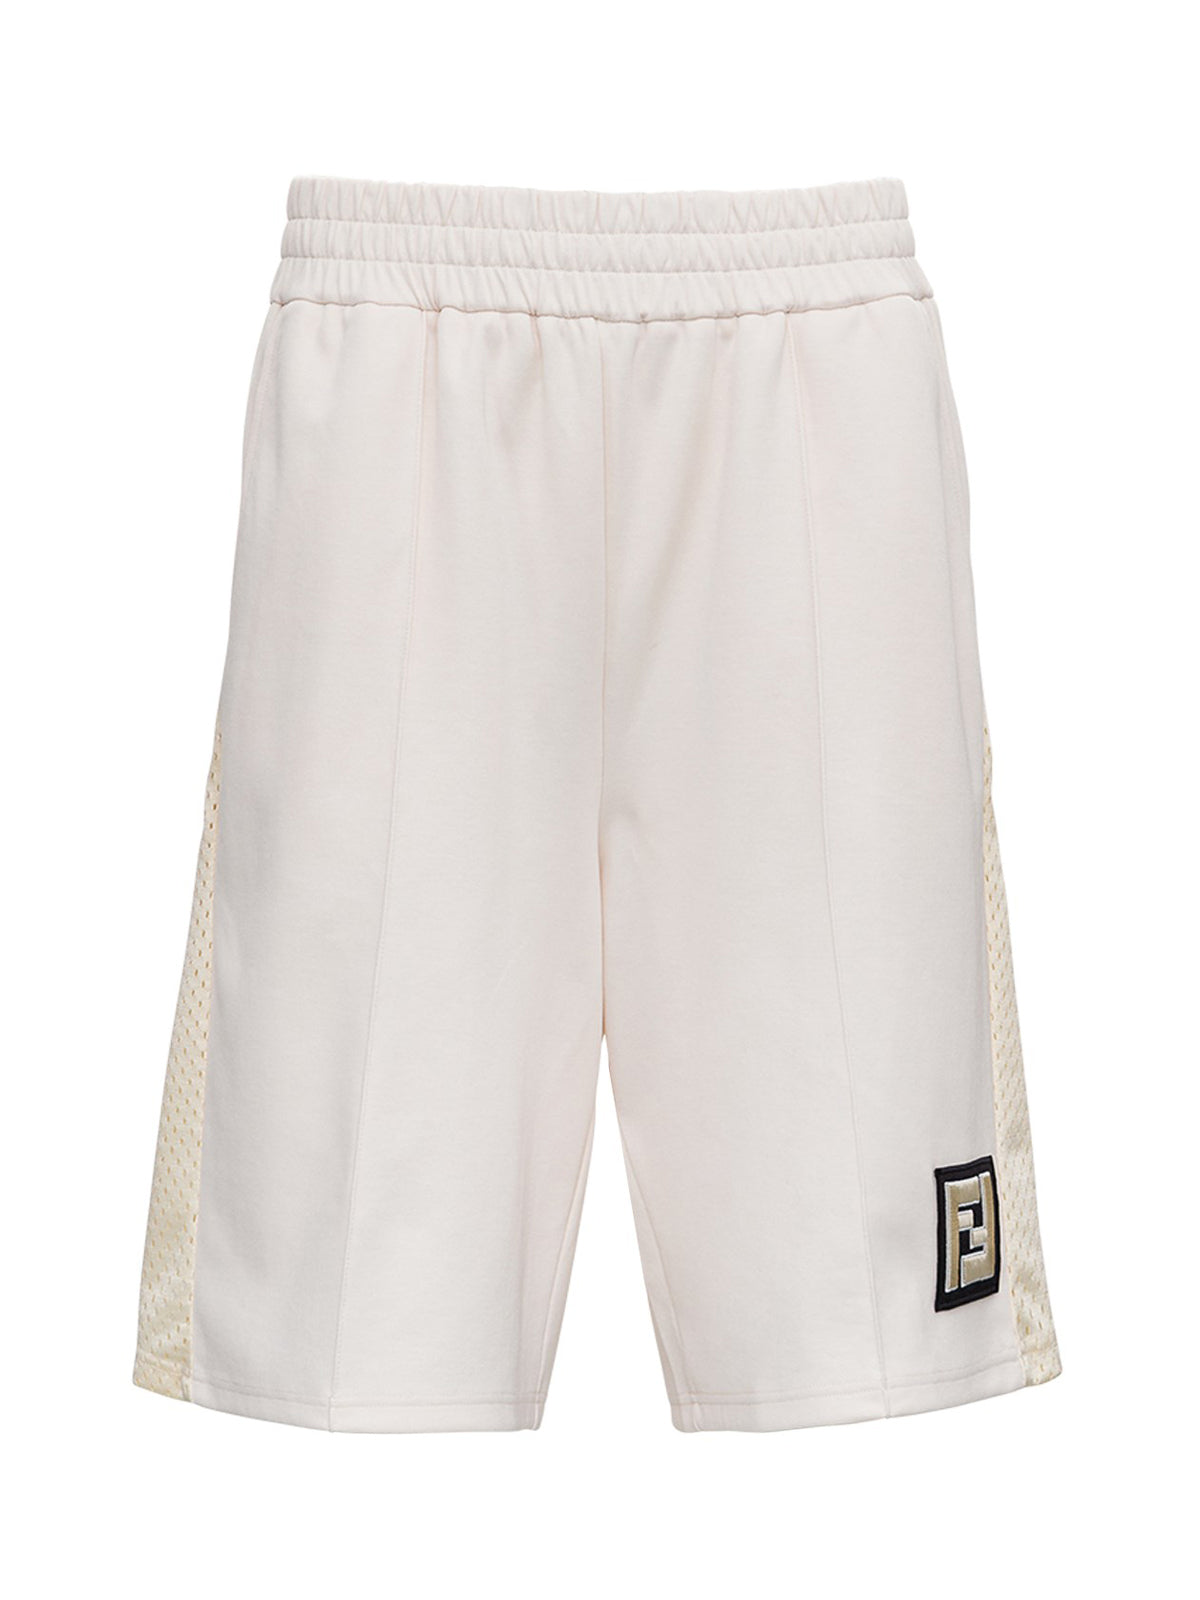 JERSEY SHORTS WITH LOGO